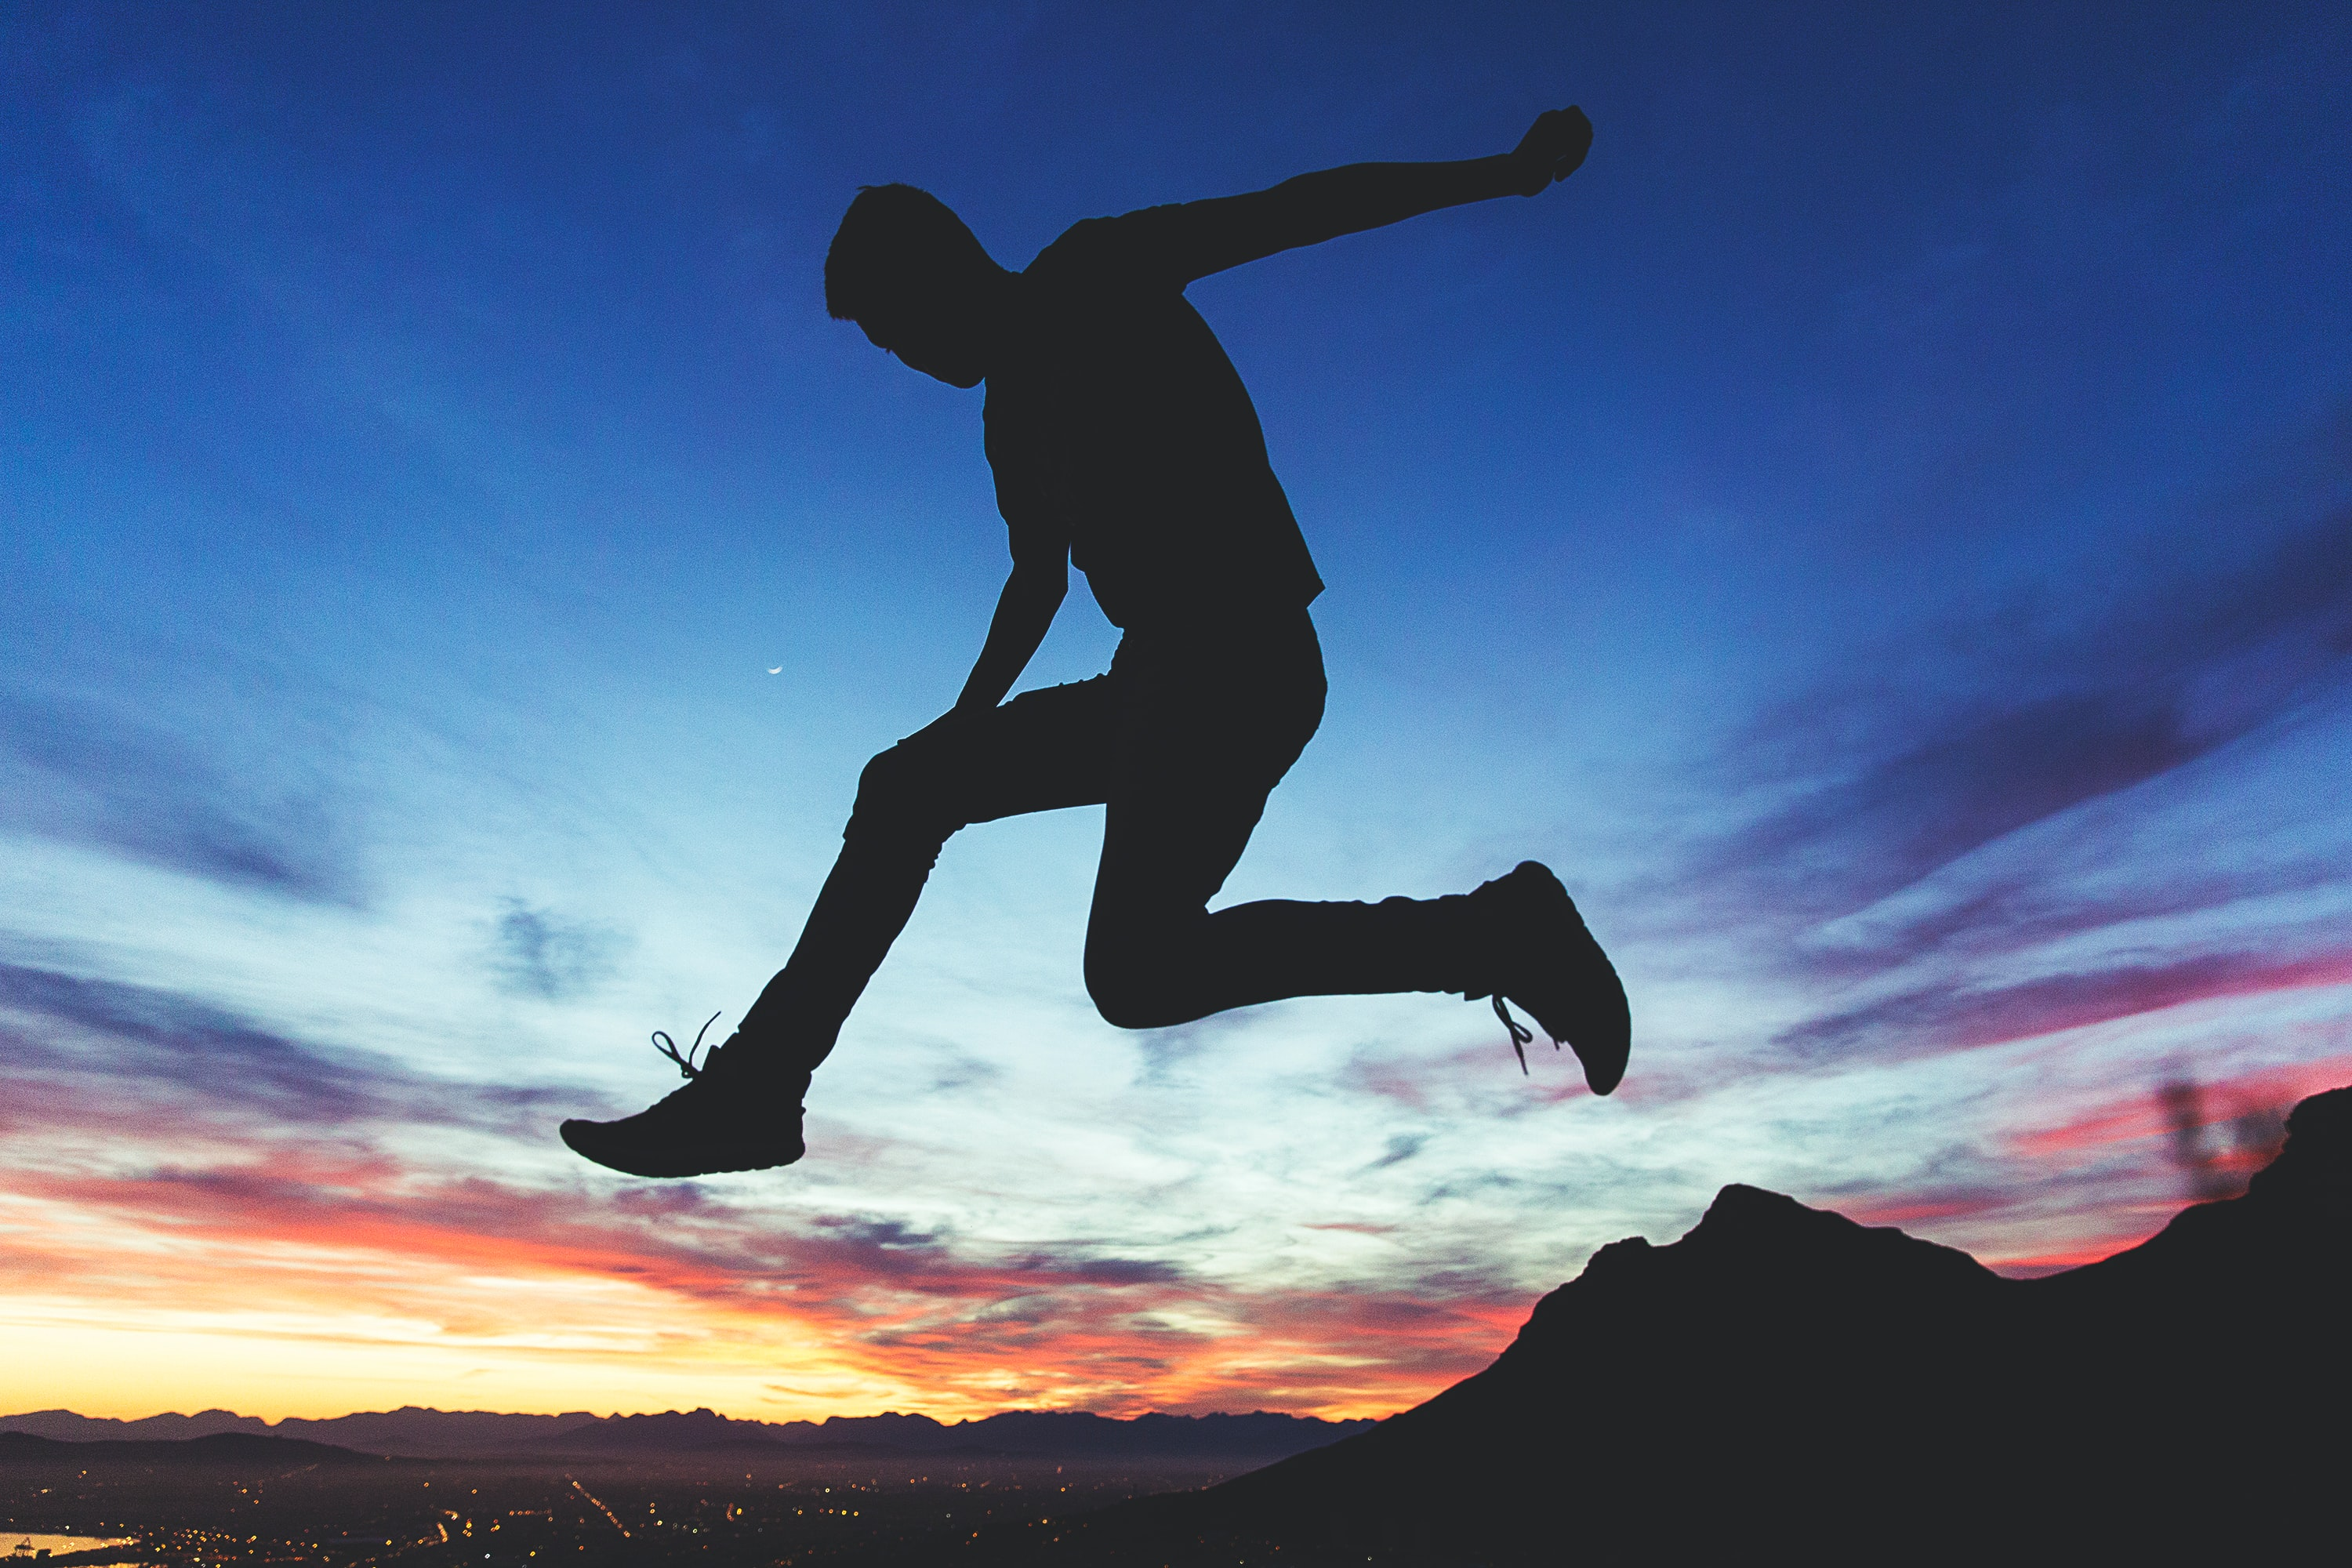 Silhouette of a man jumping with maintains in background